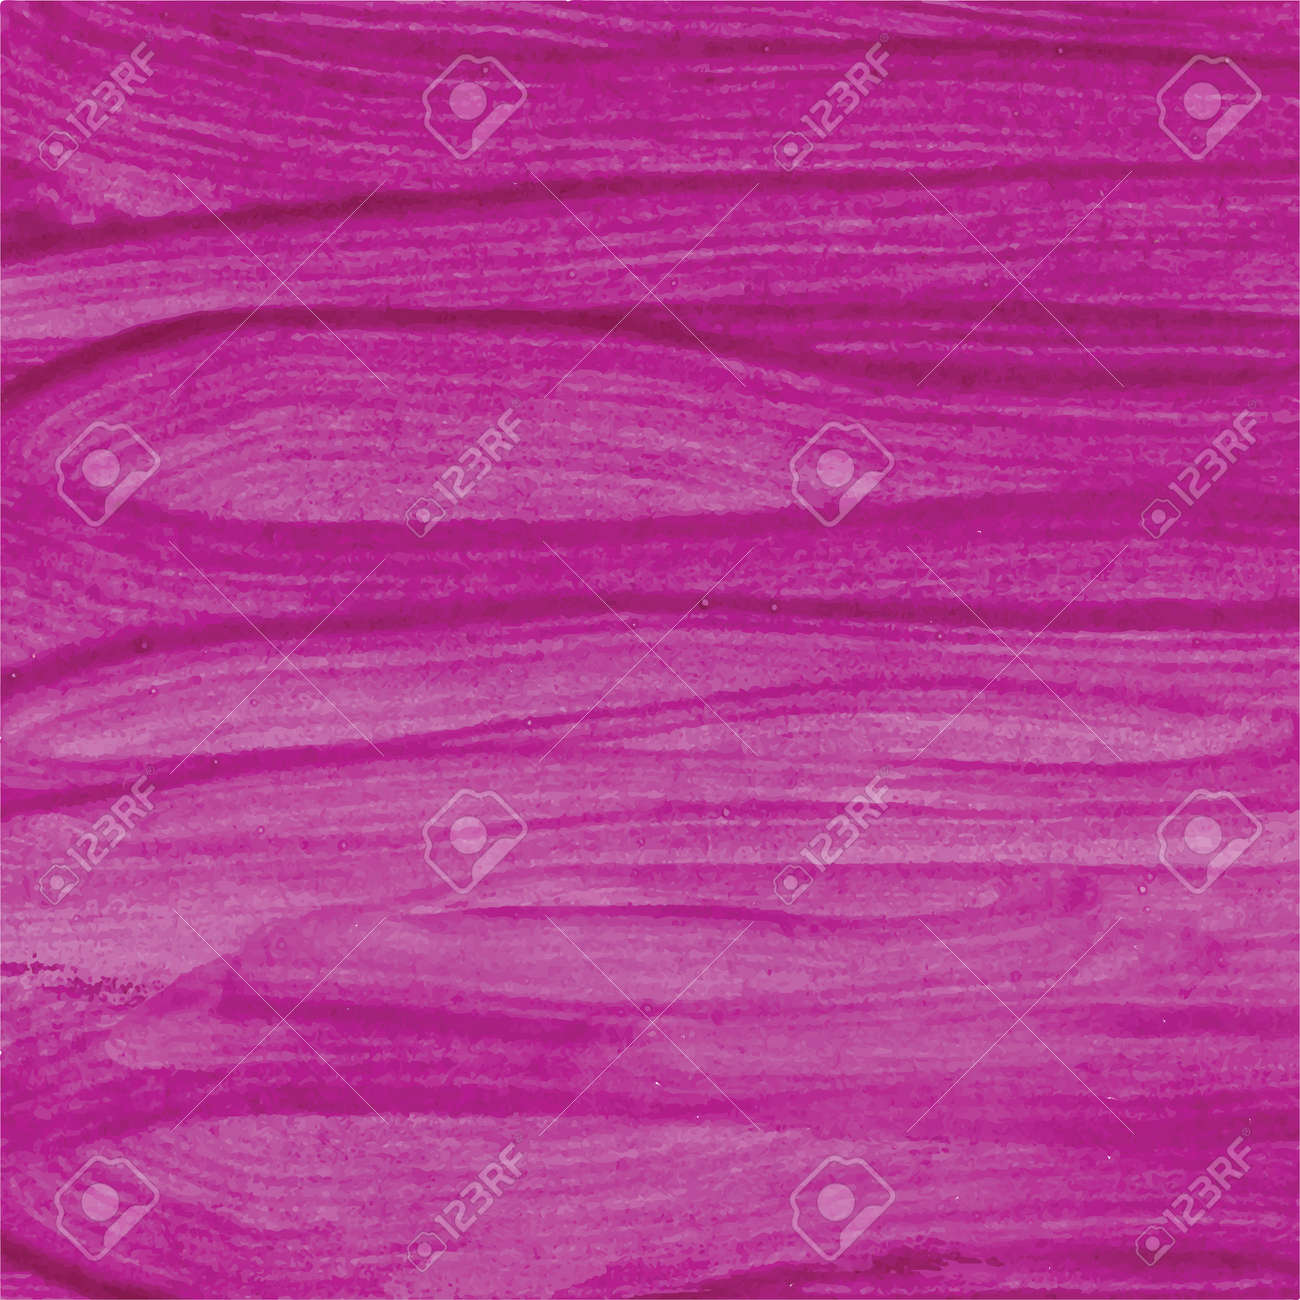 Abstract violet watercolor background hand drawn illustration - 169282085